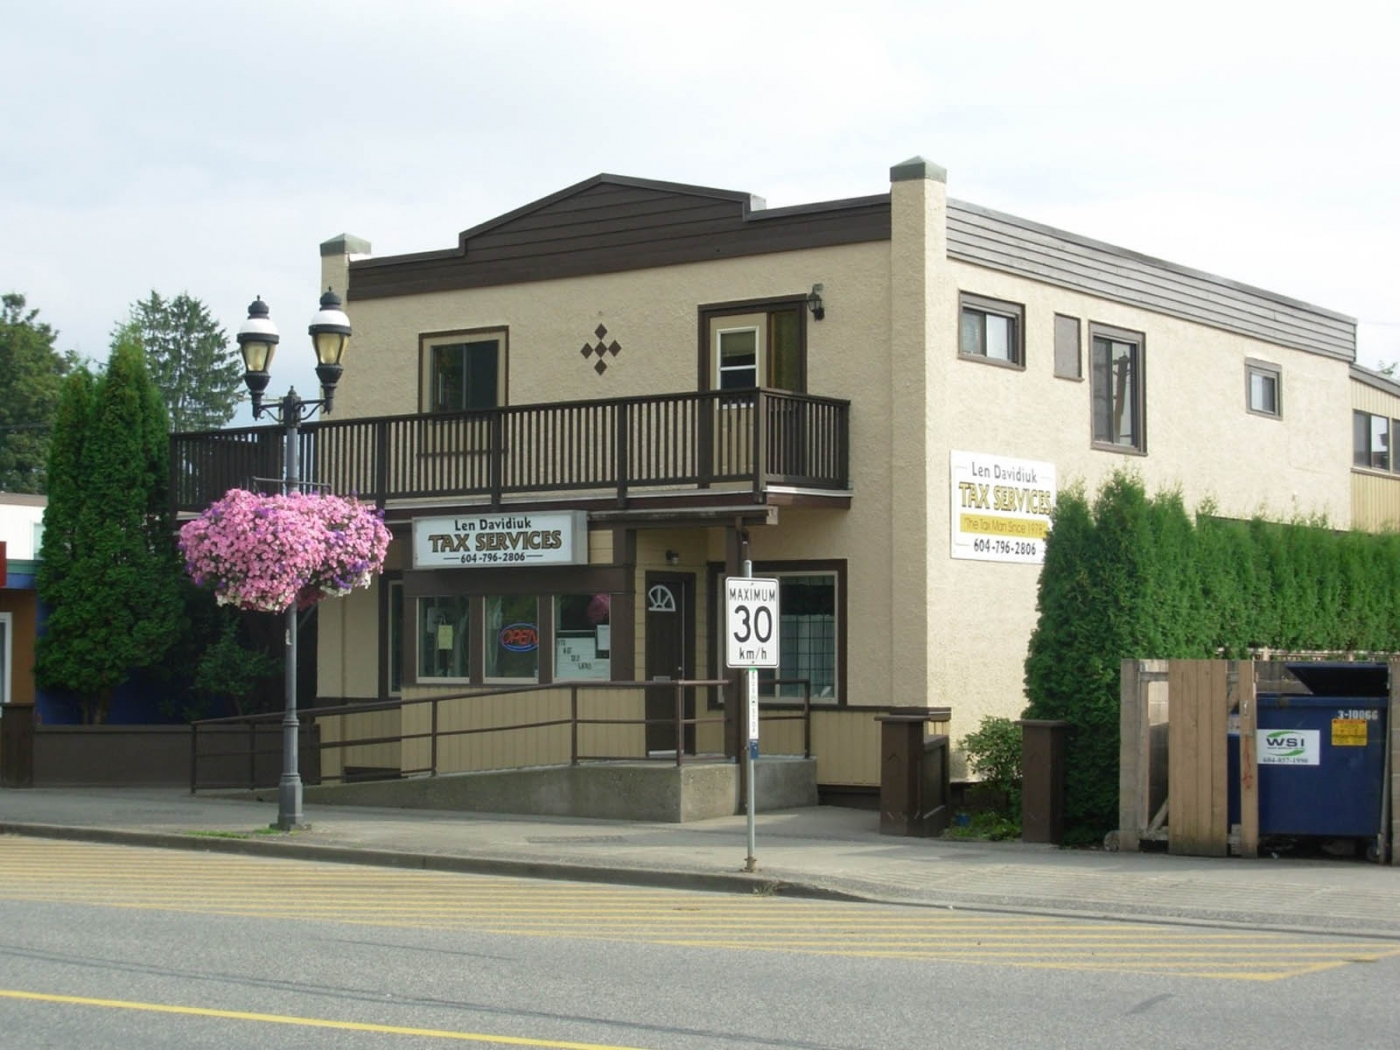 2 Story Commercial/Residential Building in Agassiz is a business for sale in BC.